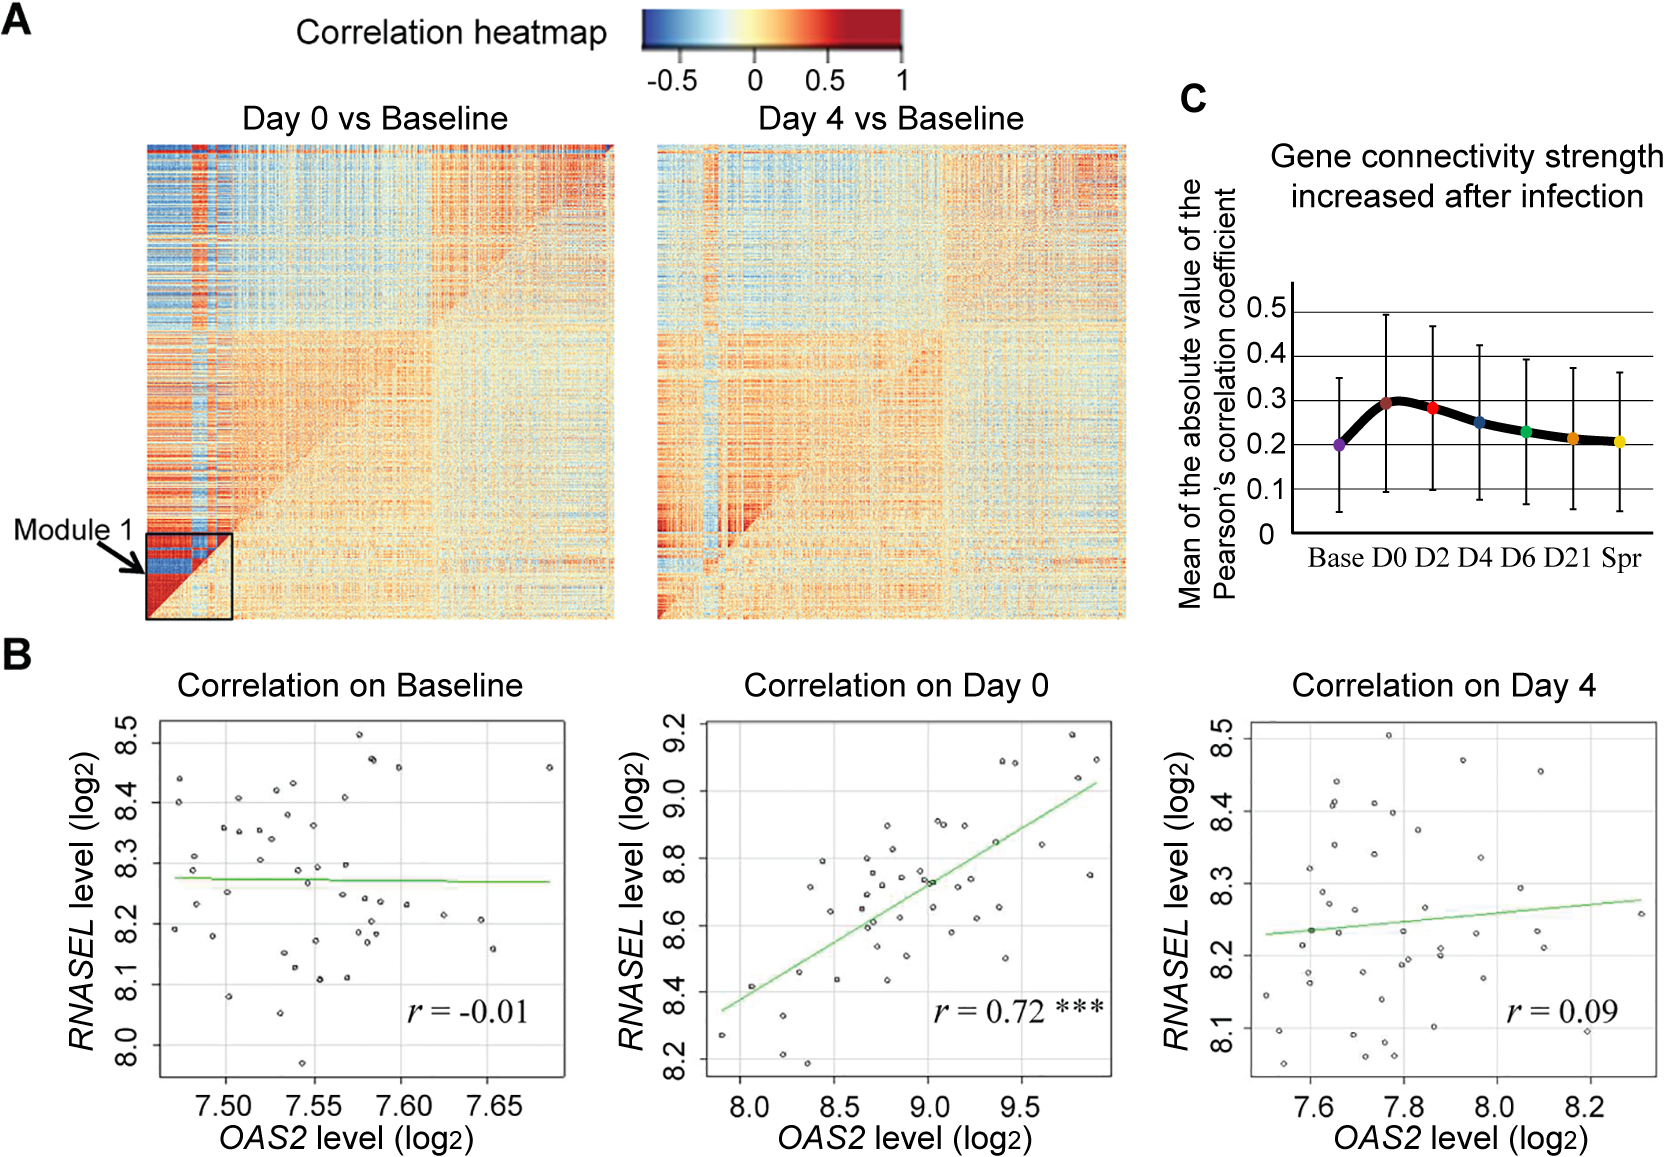 Host gene network connectivity became stronger after the subjects were infected with influenza virus.